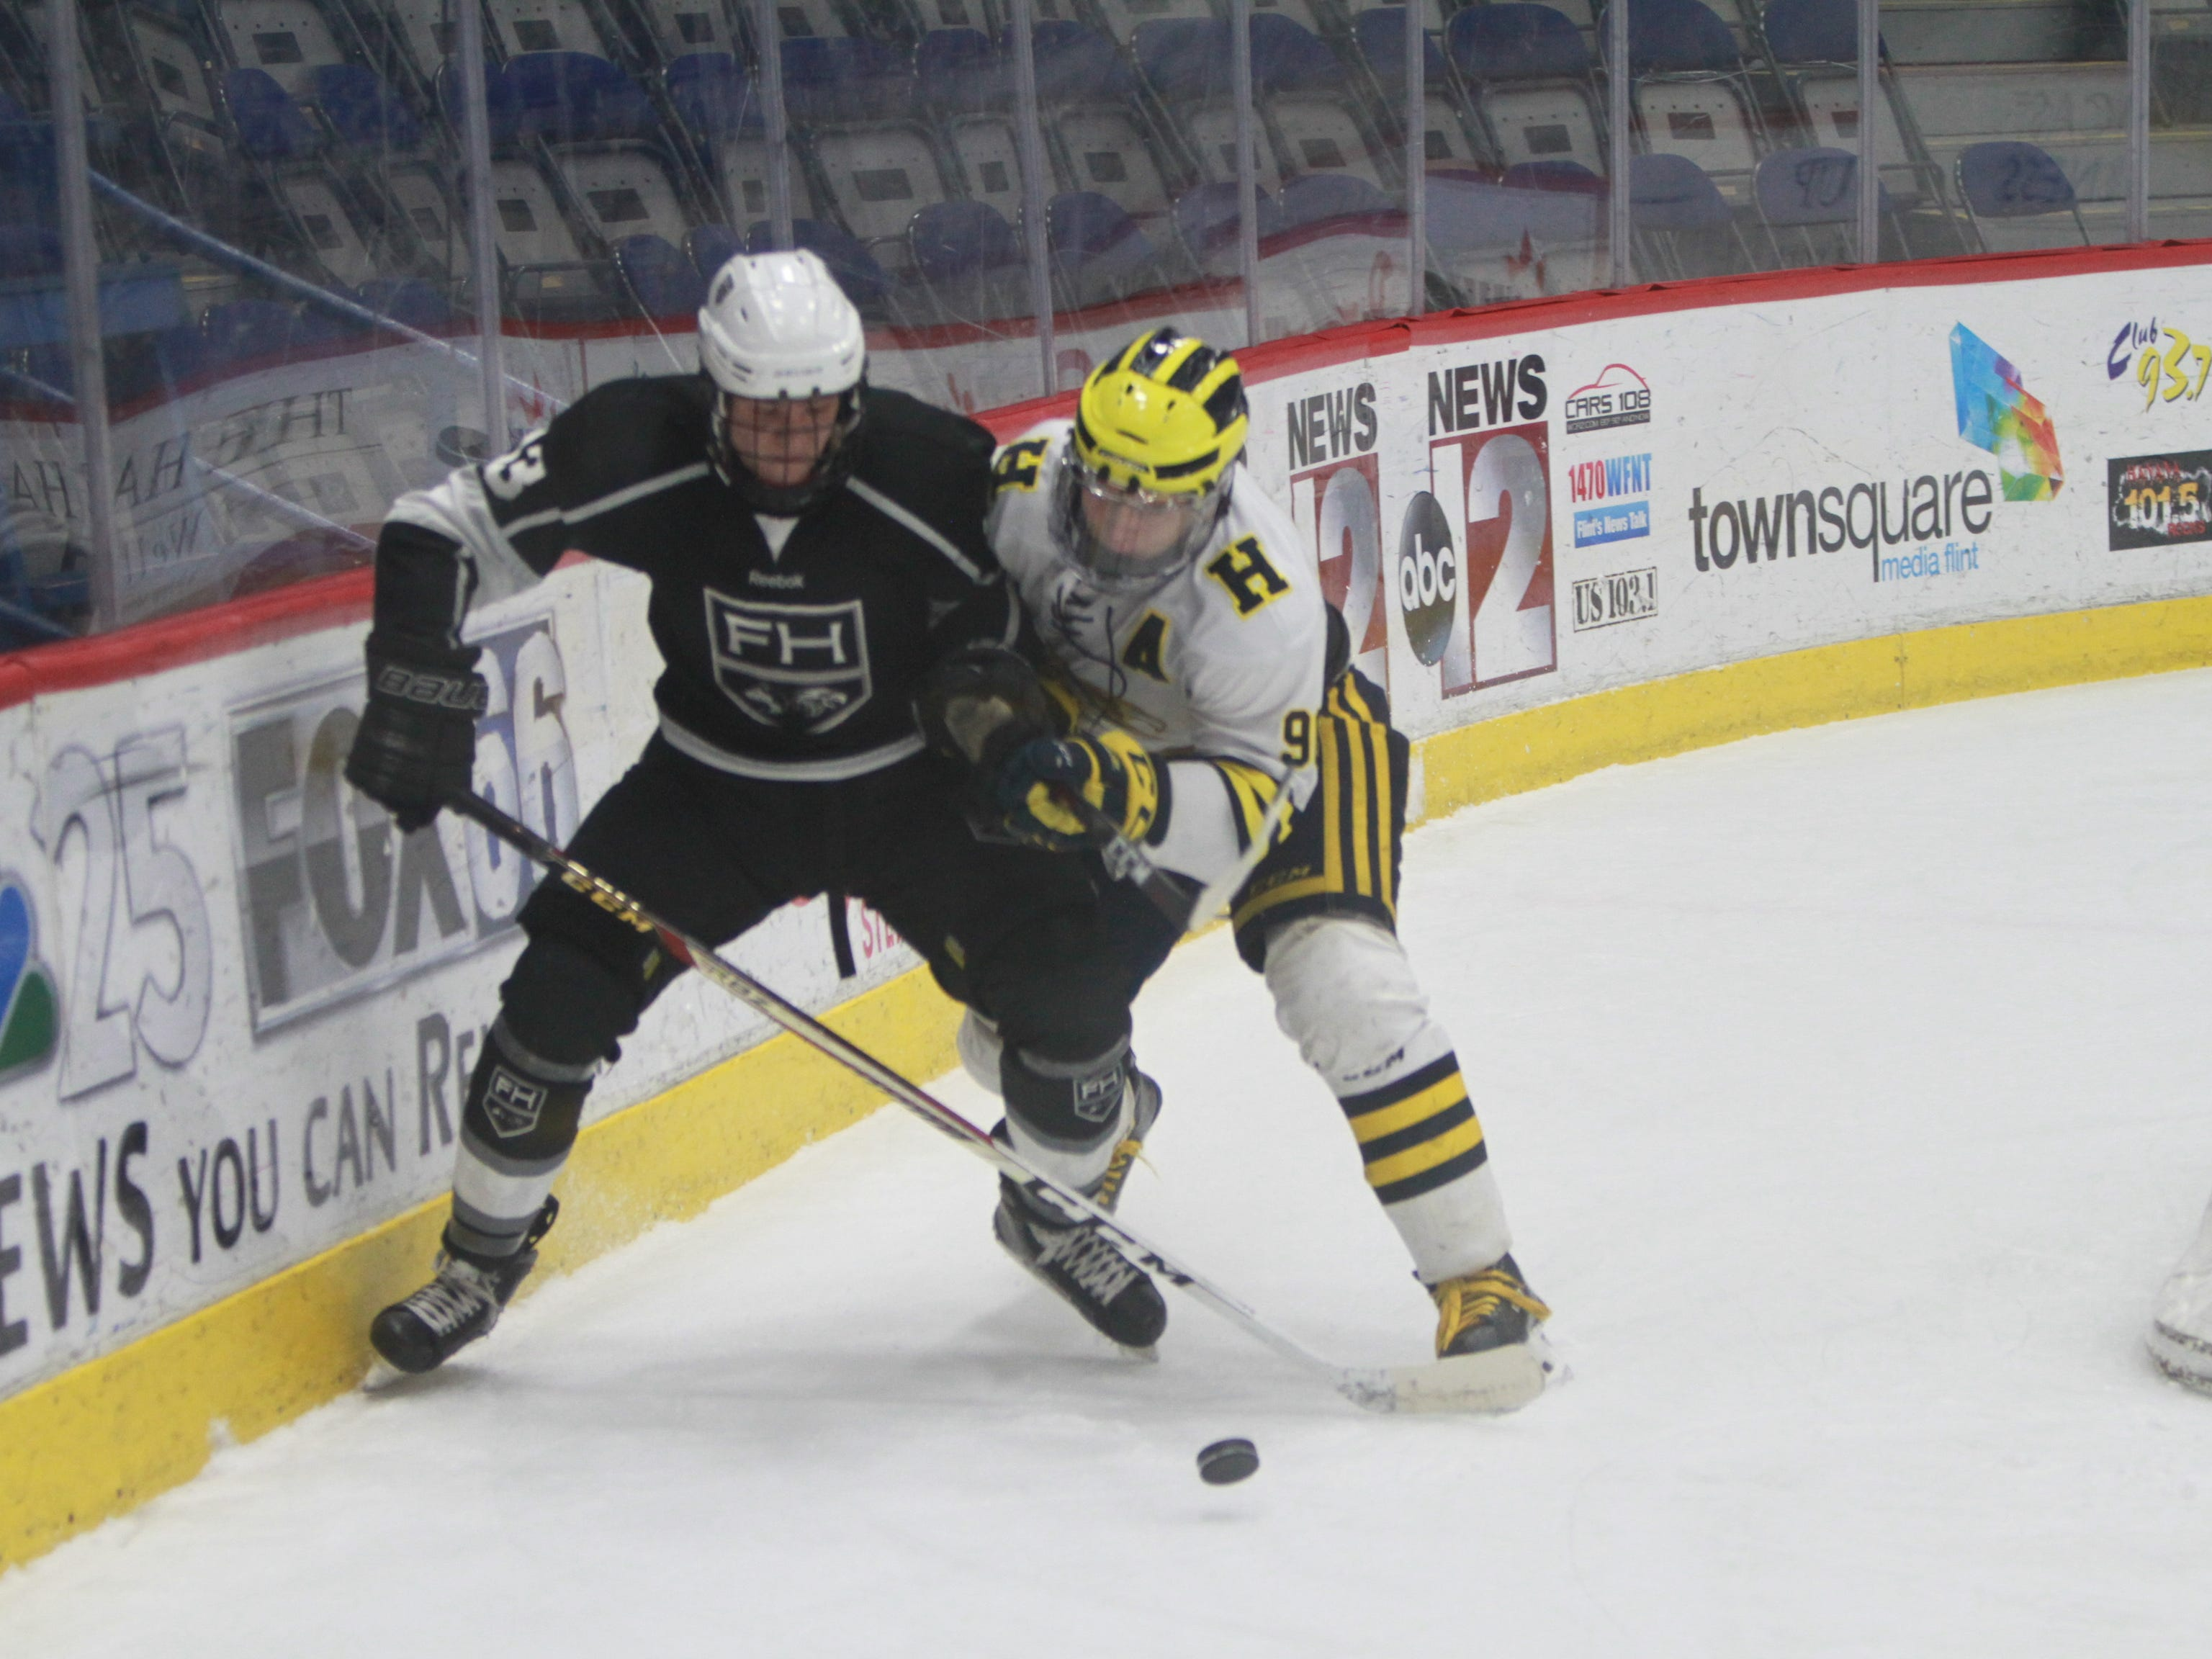 Hartland's Owen Pietila (right) and Forest Hills Eastern's Cure Cumming battle for the puck behind the net during the state Division 2 hockey quarterfinals in Flint on Tuesday, March 5, 2019.